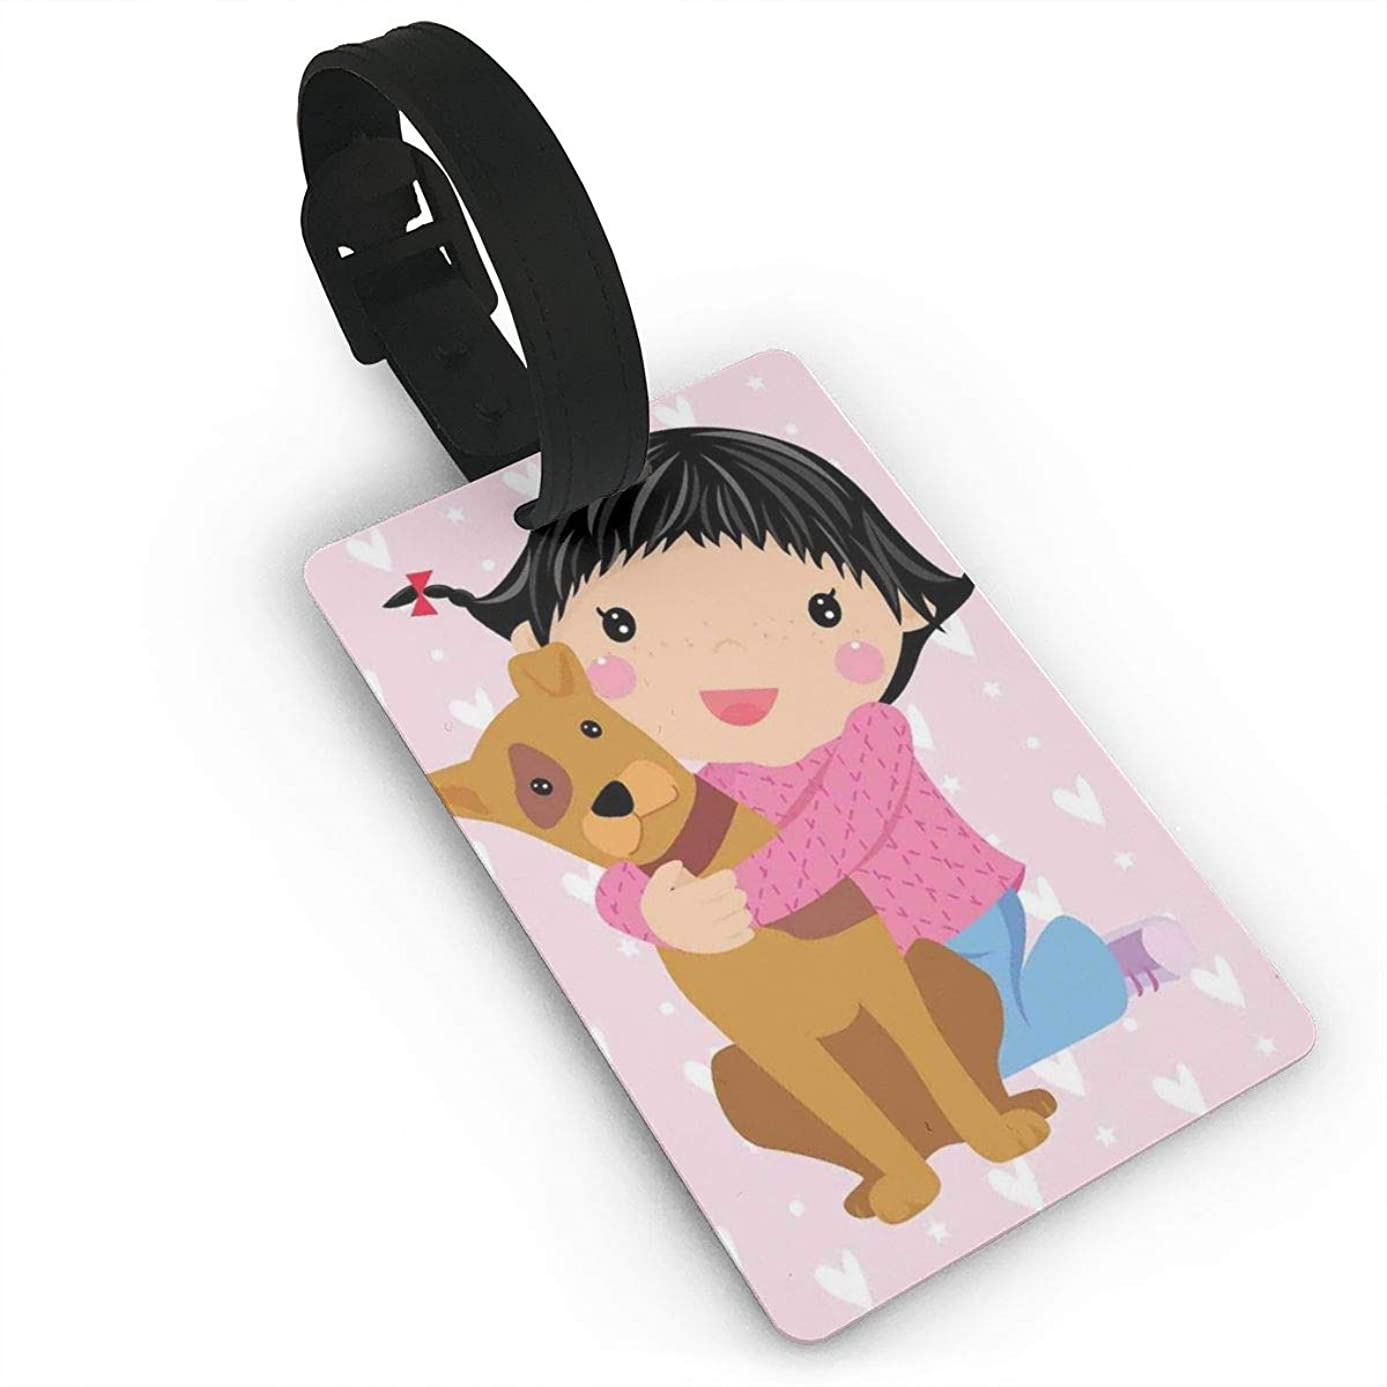 Luggage Tags Flexible Travel ID Identification Labels,Cute Little Girl And Dog Hugging And Smiling Doodle Print With Hearts Backdrop,Travel Accessory With Wristband